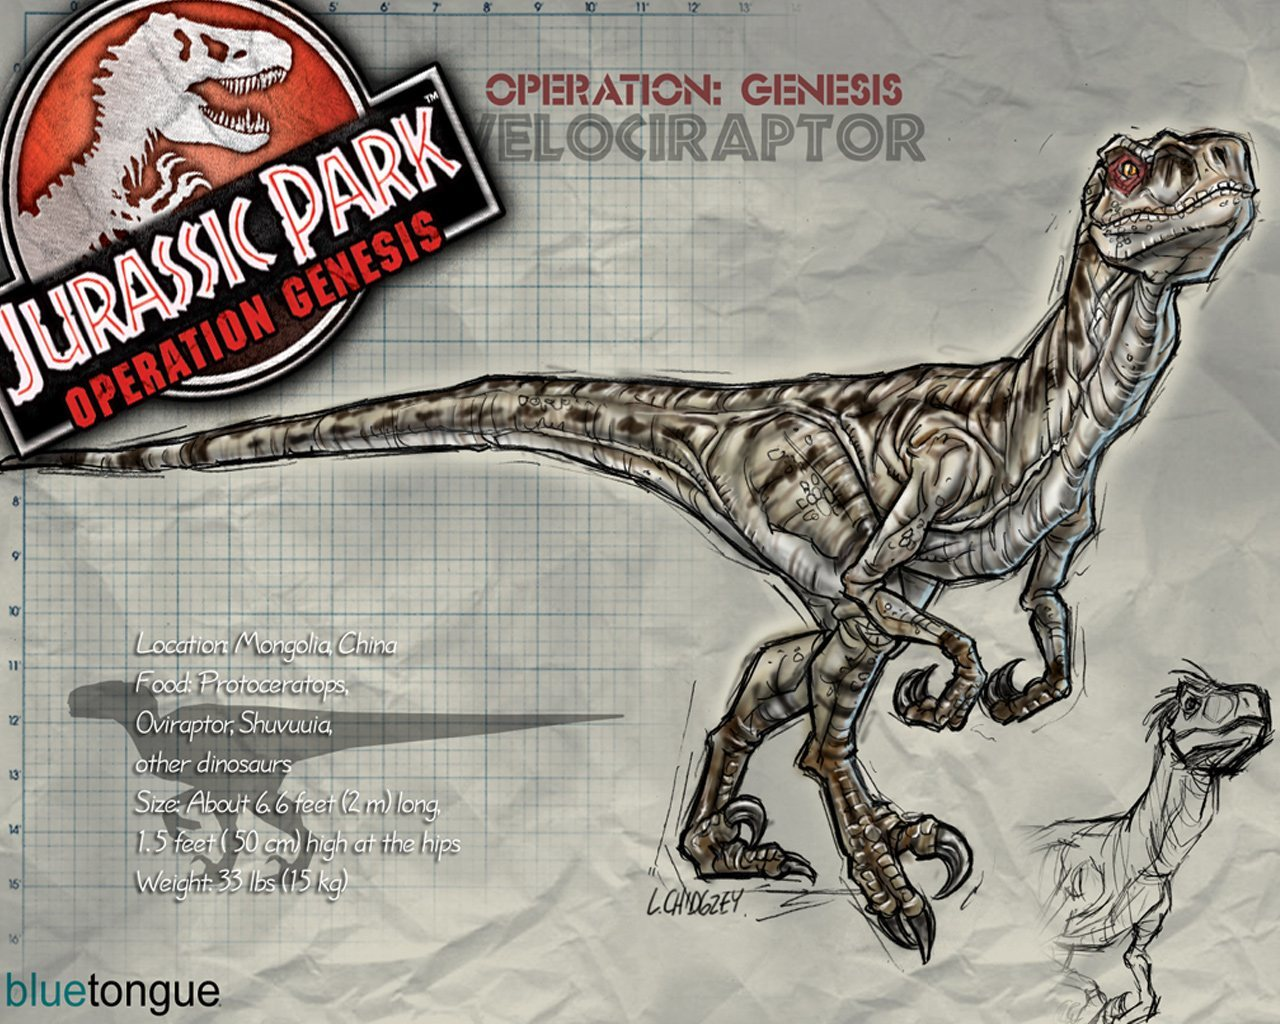 Dinosaurs Jurassic Park HD Wallpaper